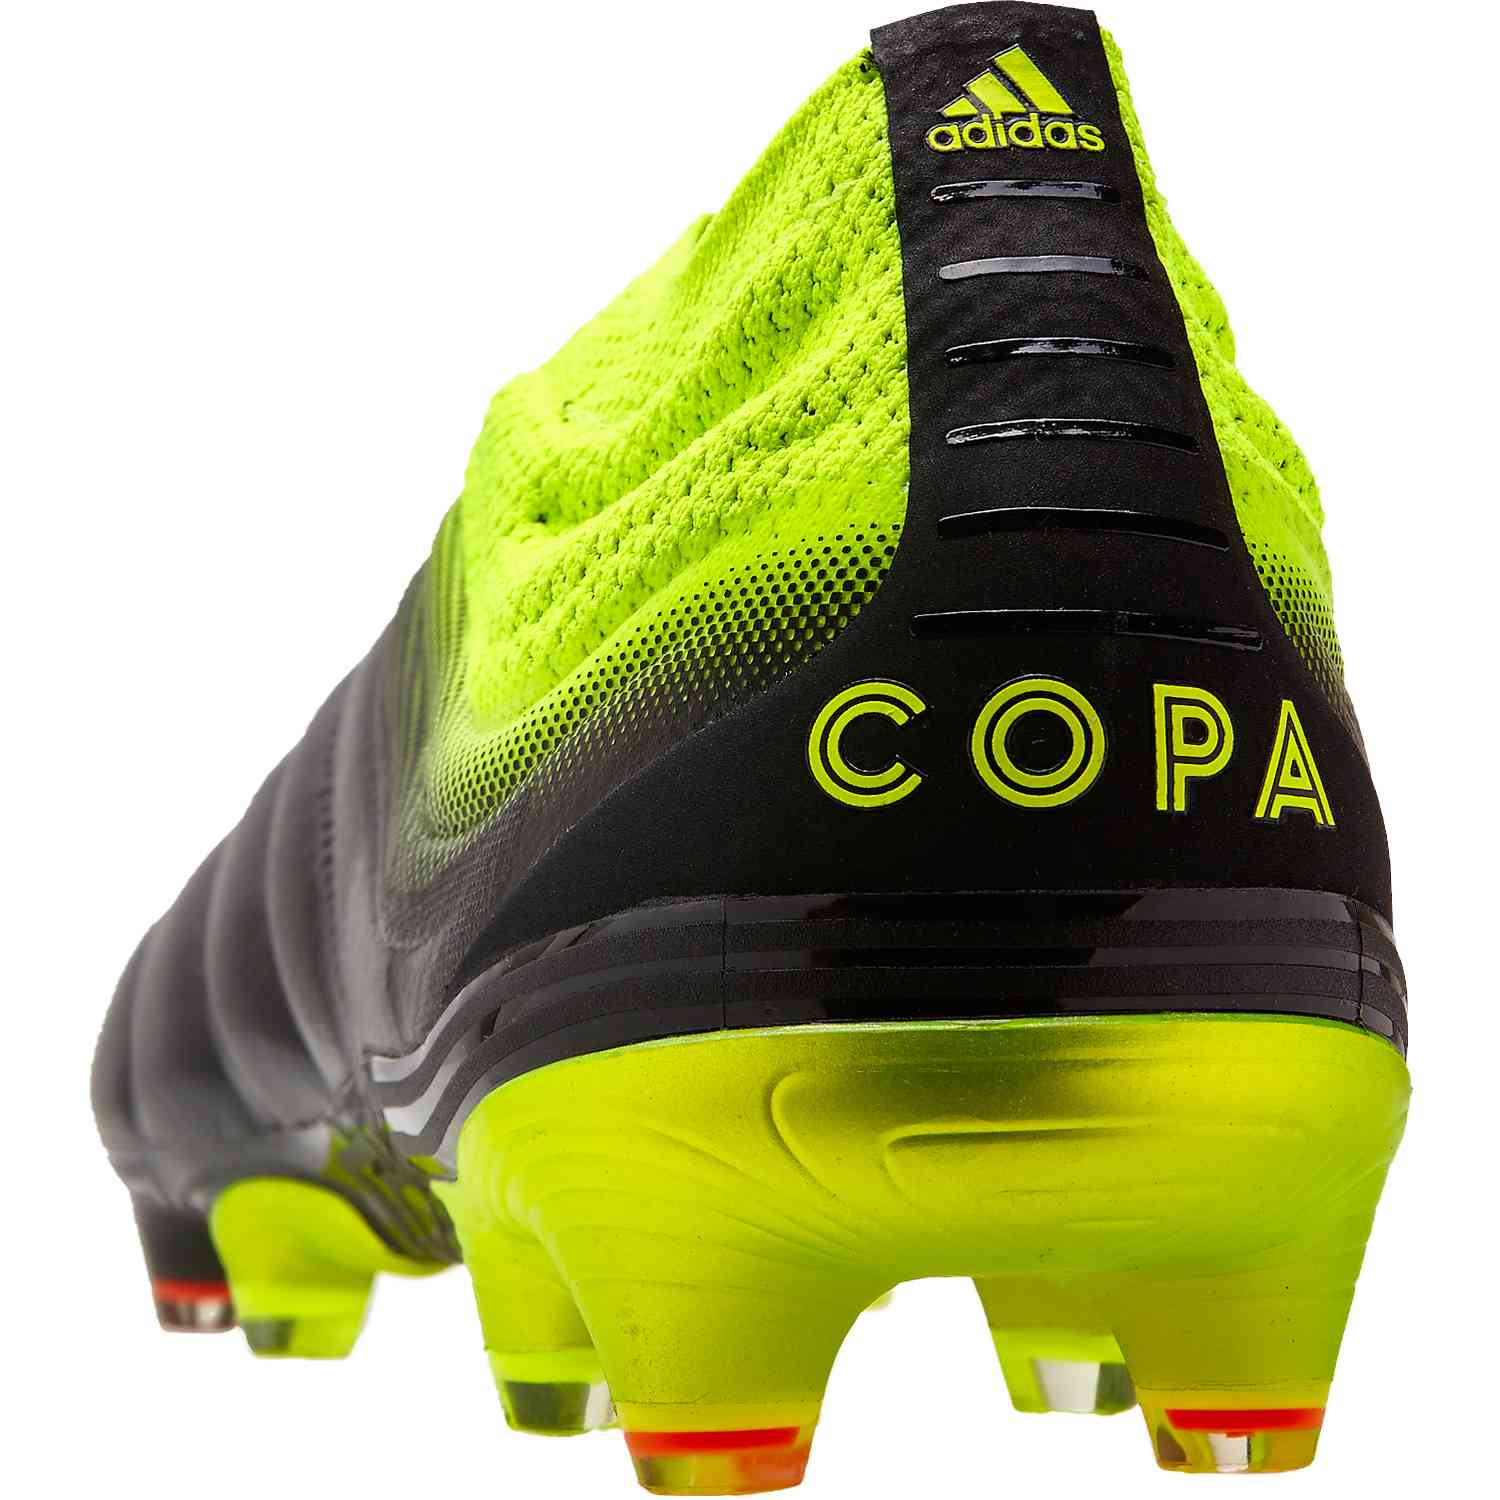 on sale 671b0 a4334 adidas Copa 19+ FG - Exhibit Pack - Soccer Master